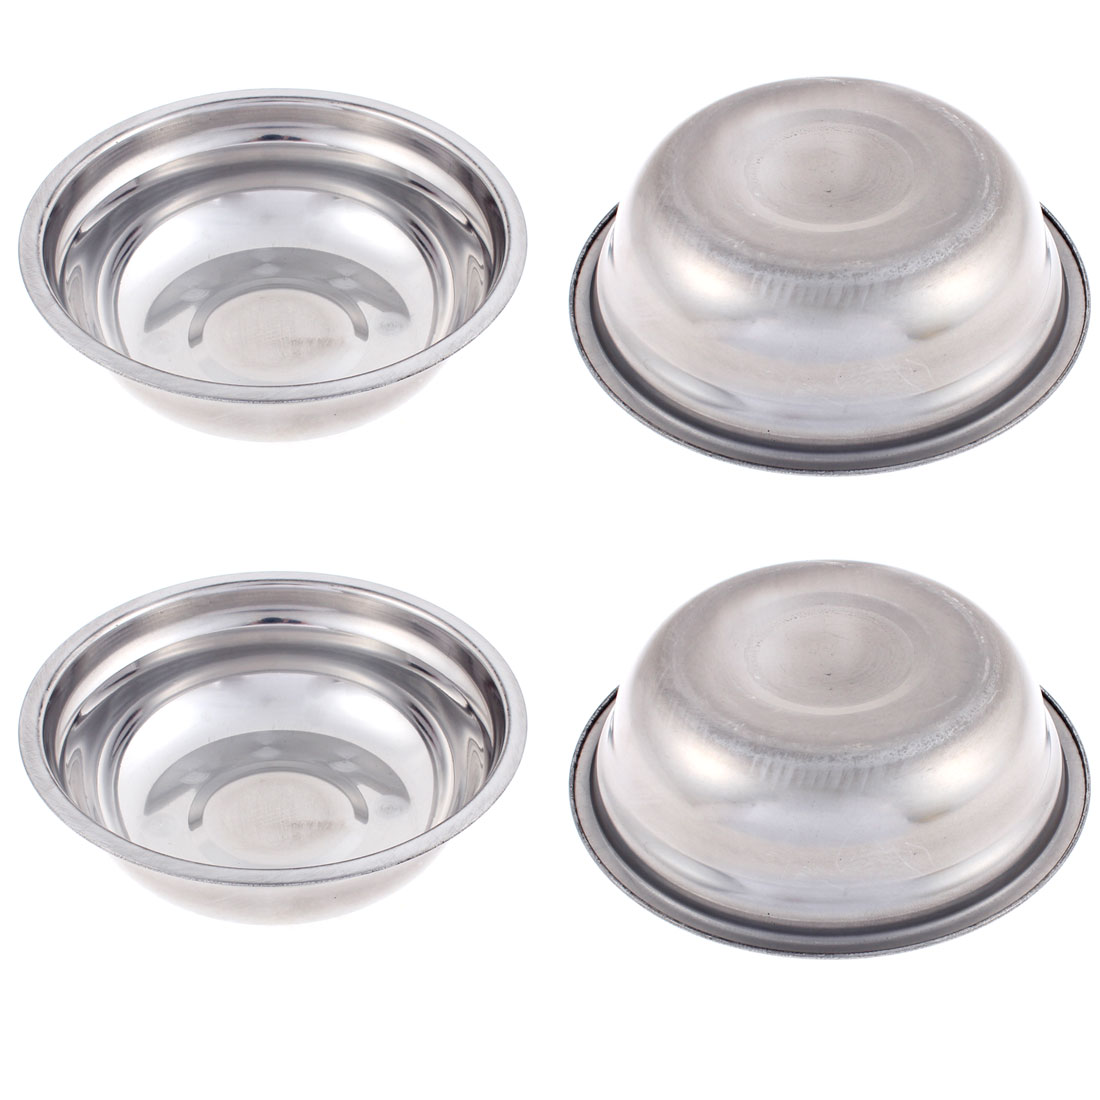 "Home Round Shaped Dinner Soup Rice Food Bowl 6"" Dia 4Pcs"